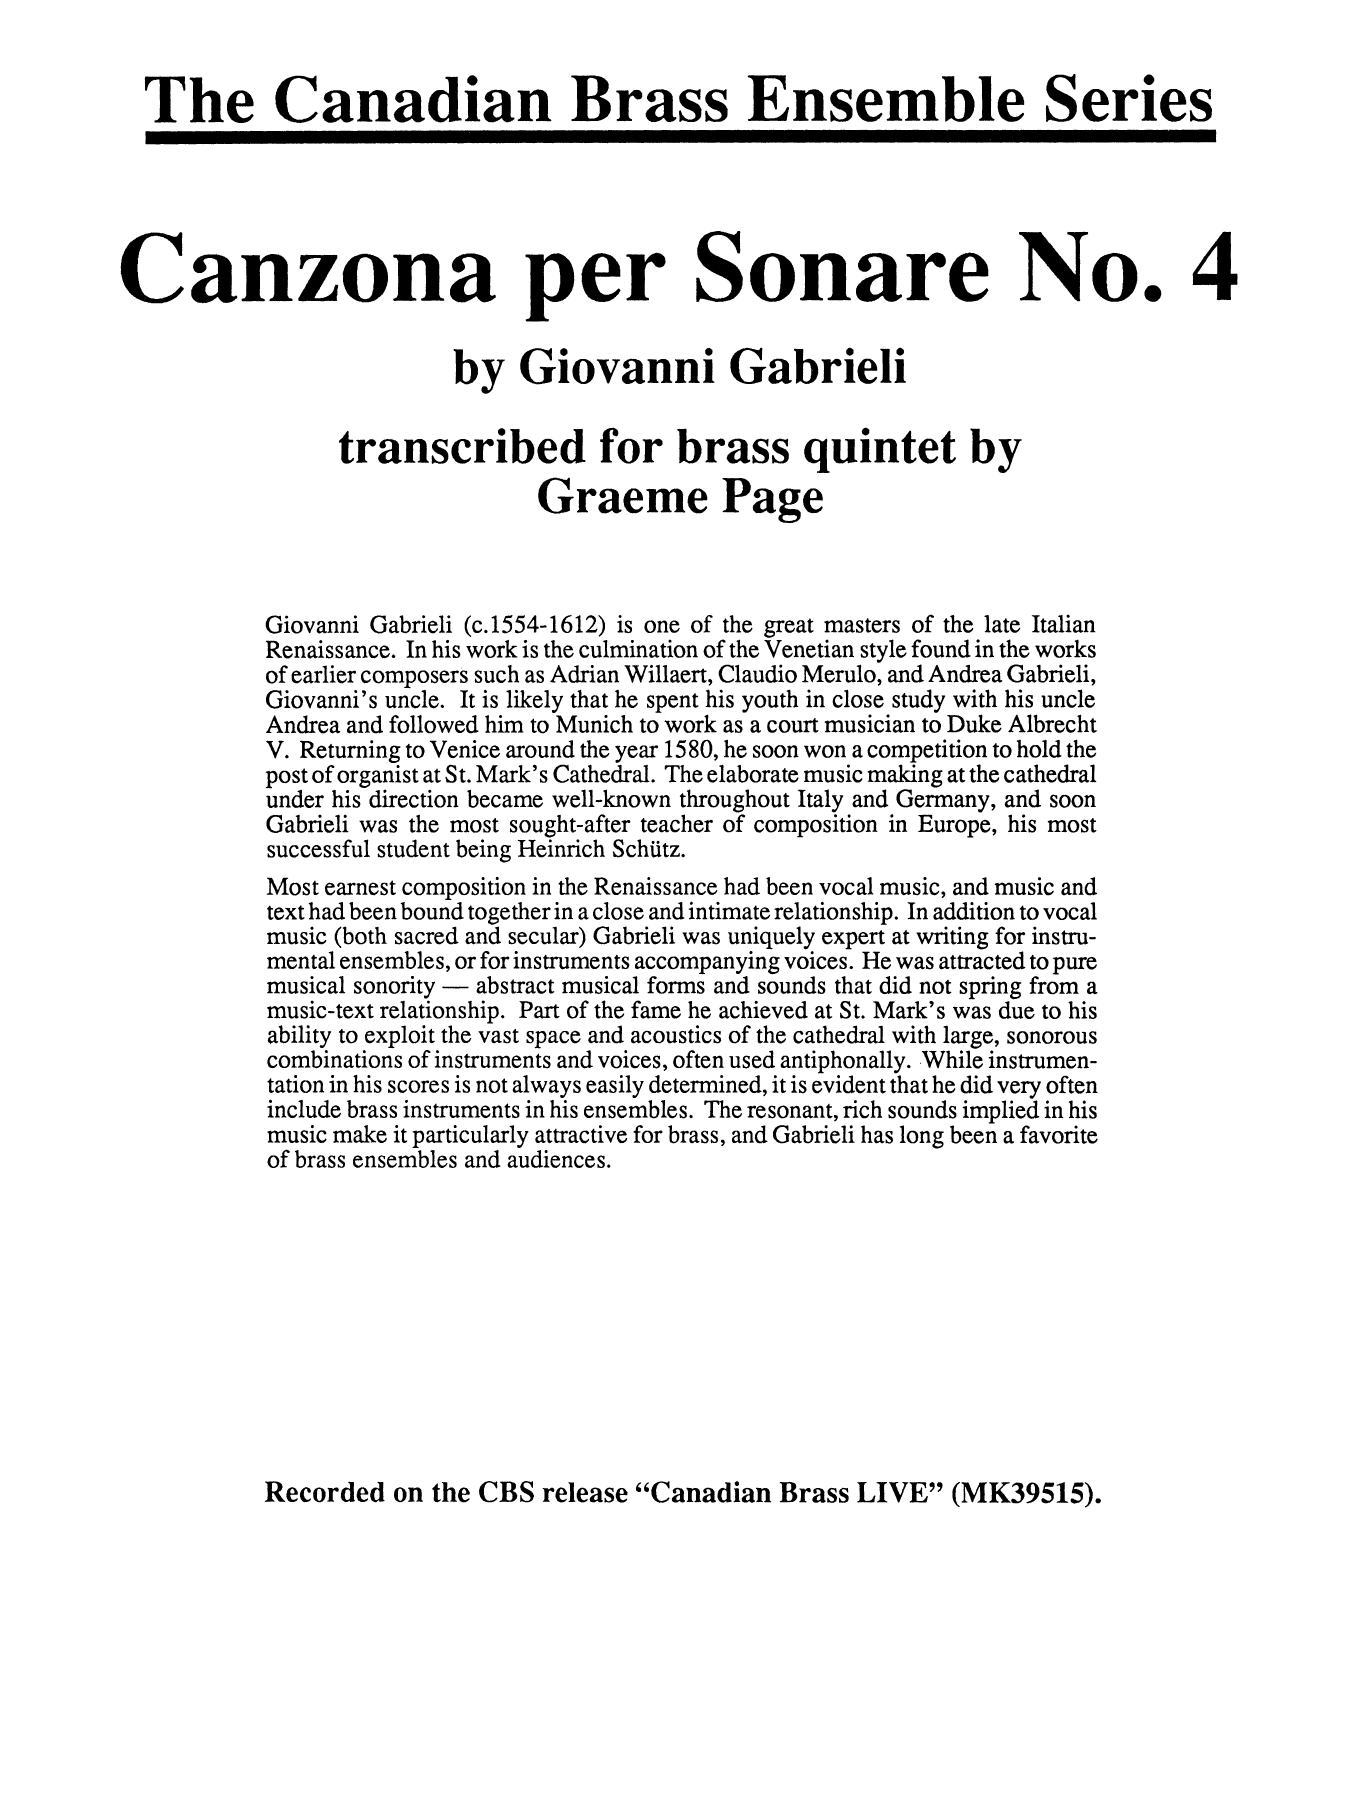 Canzona Per Sonare No. 4 - Full Score Sheet Music